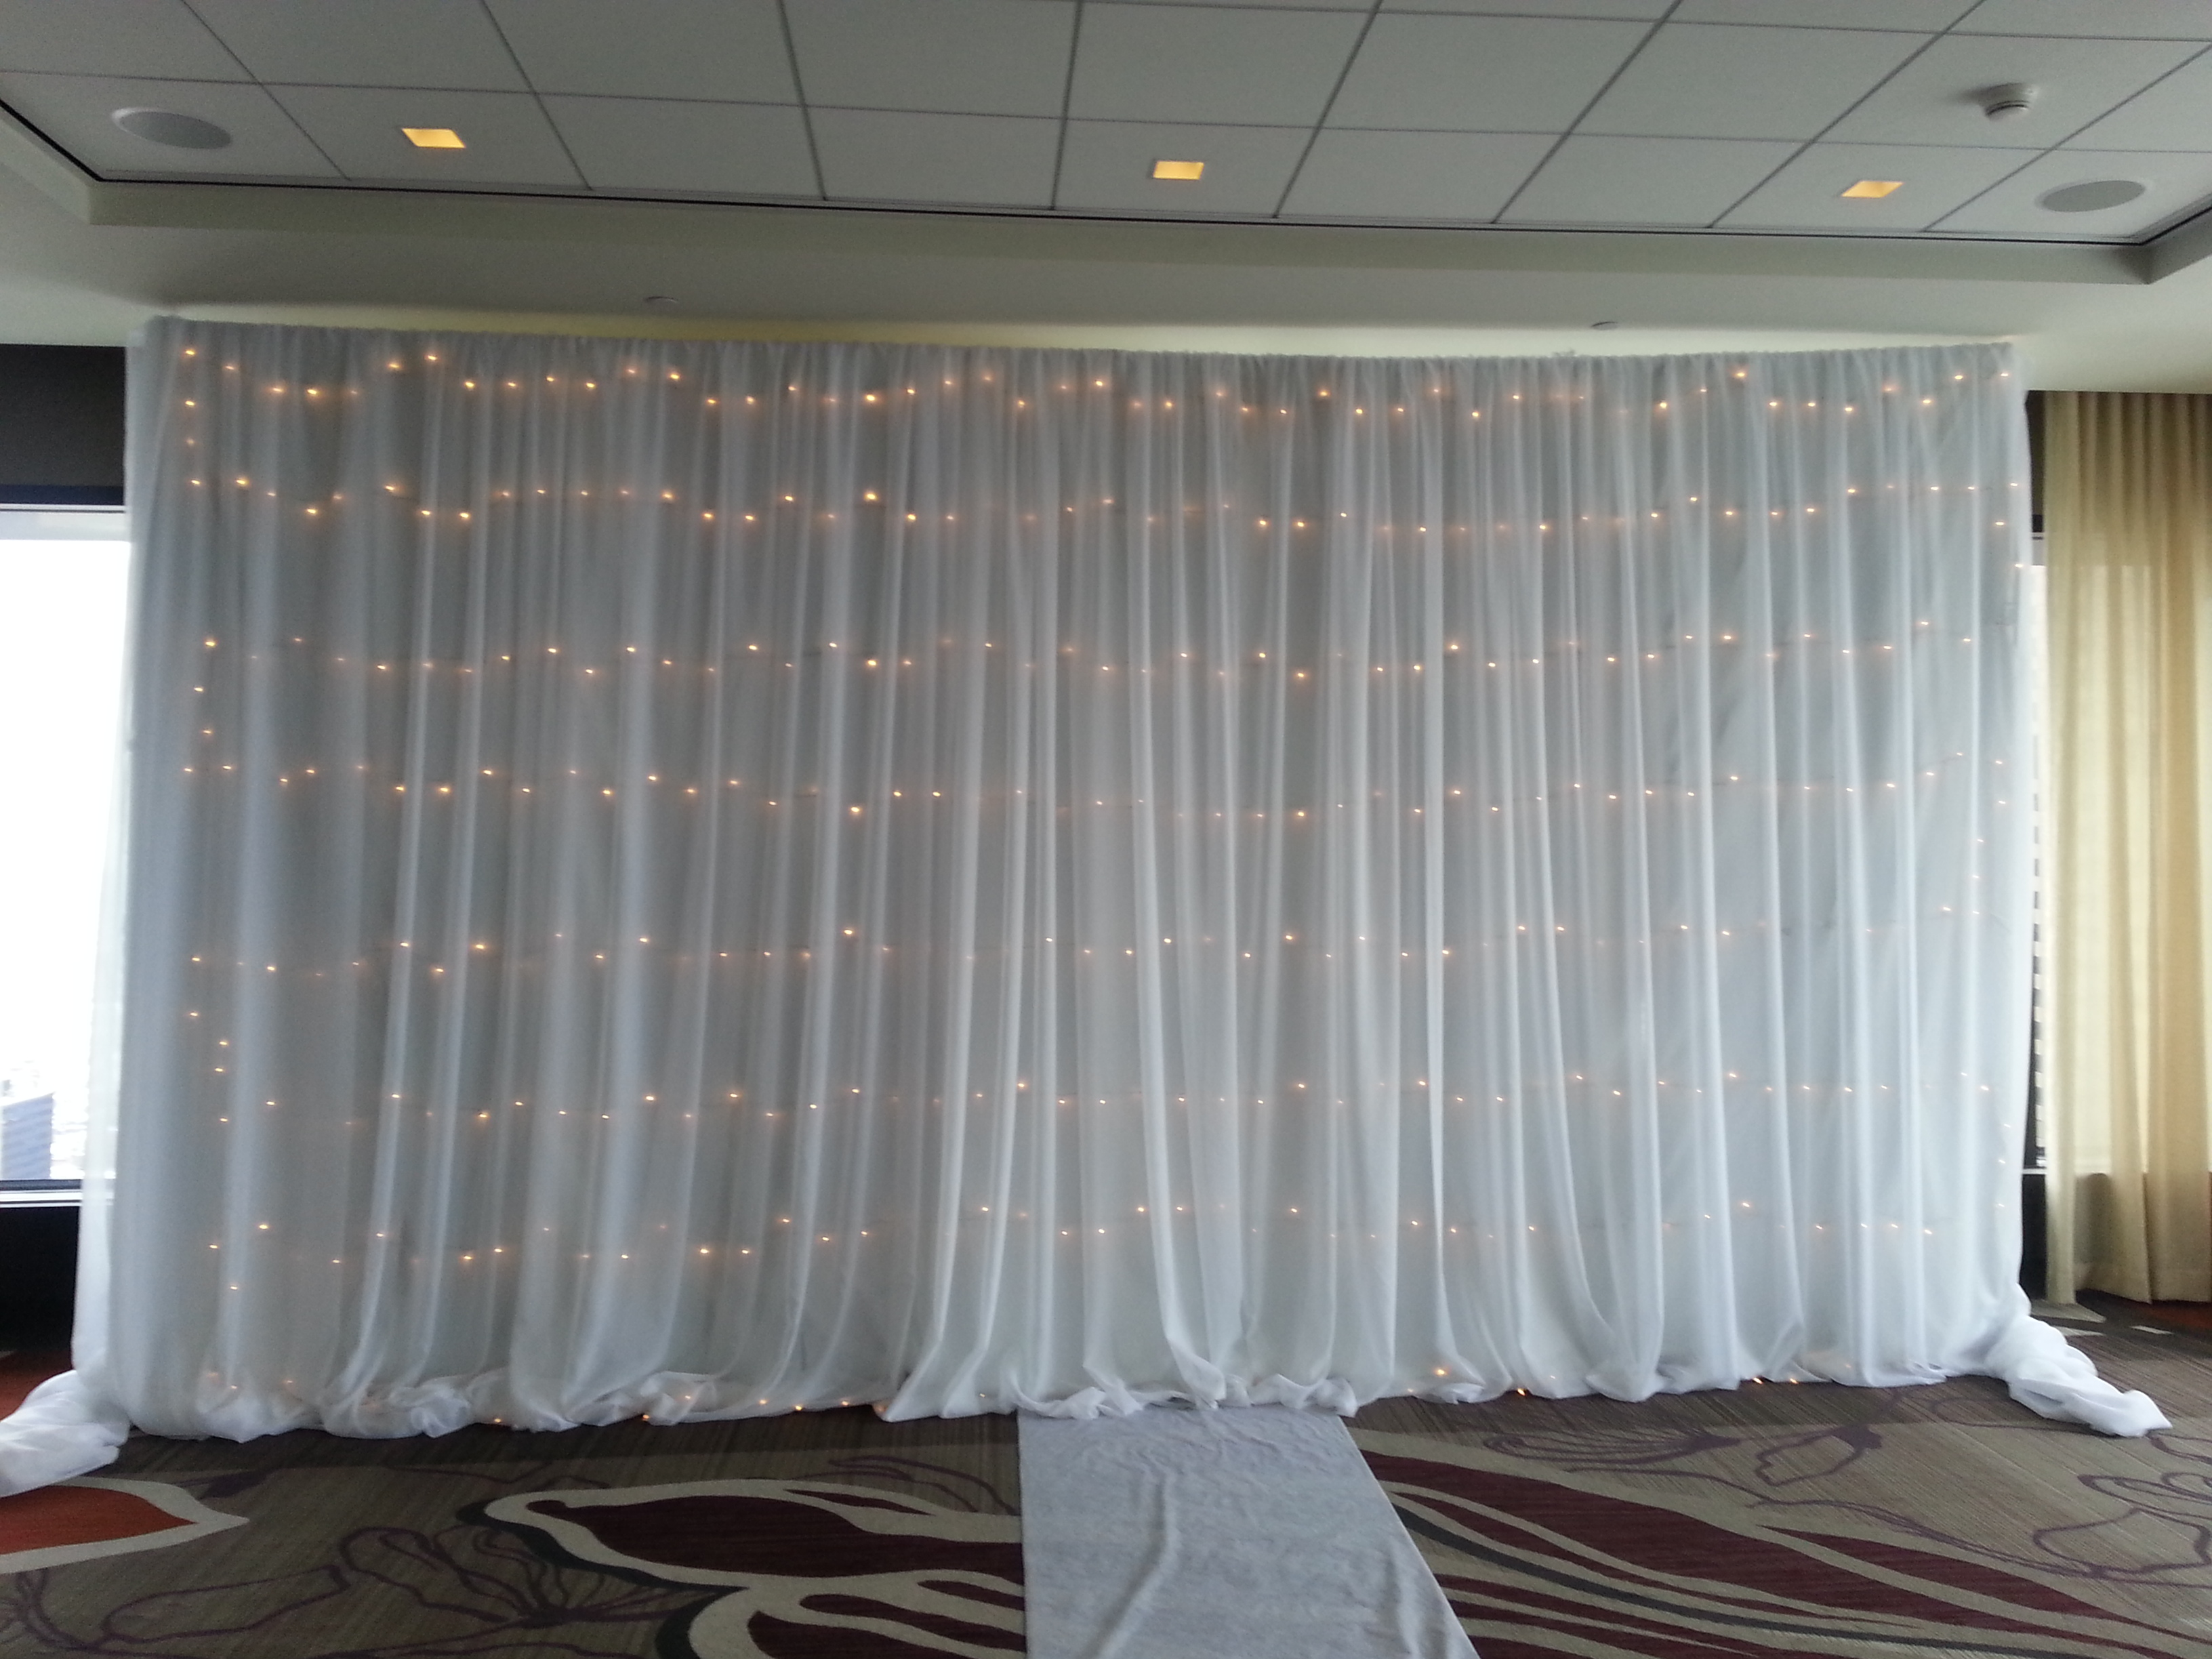 vast us quickly and of dressing to allows a drapes temporary range install uses hire draping our events conferences live l pipes including stock for drape wide room pipe